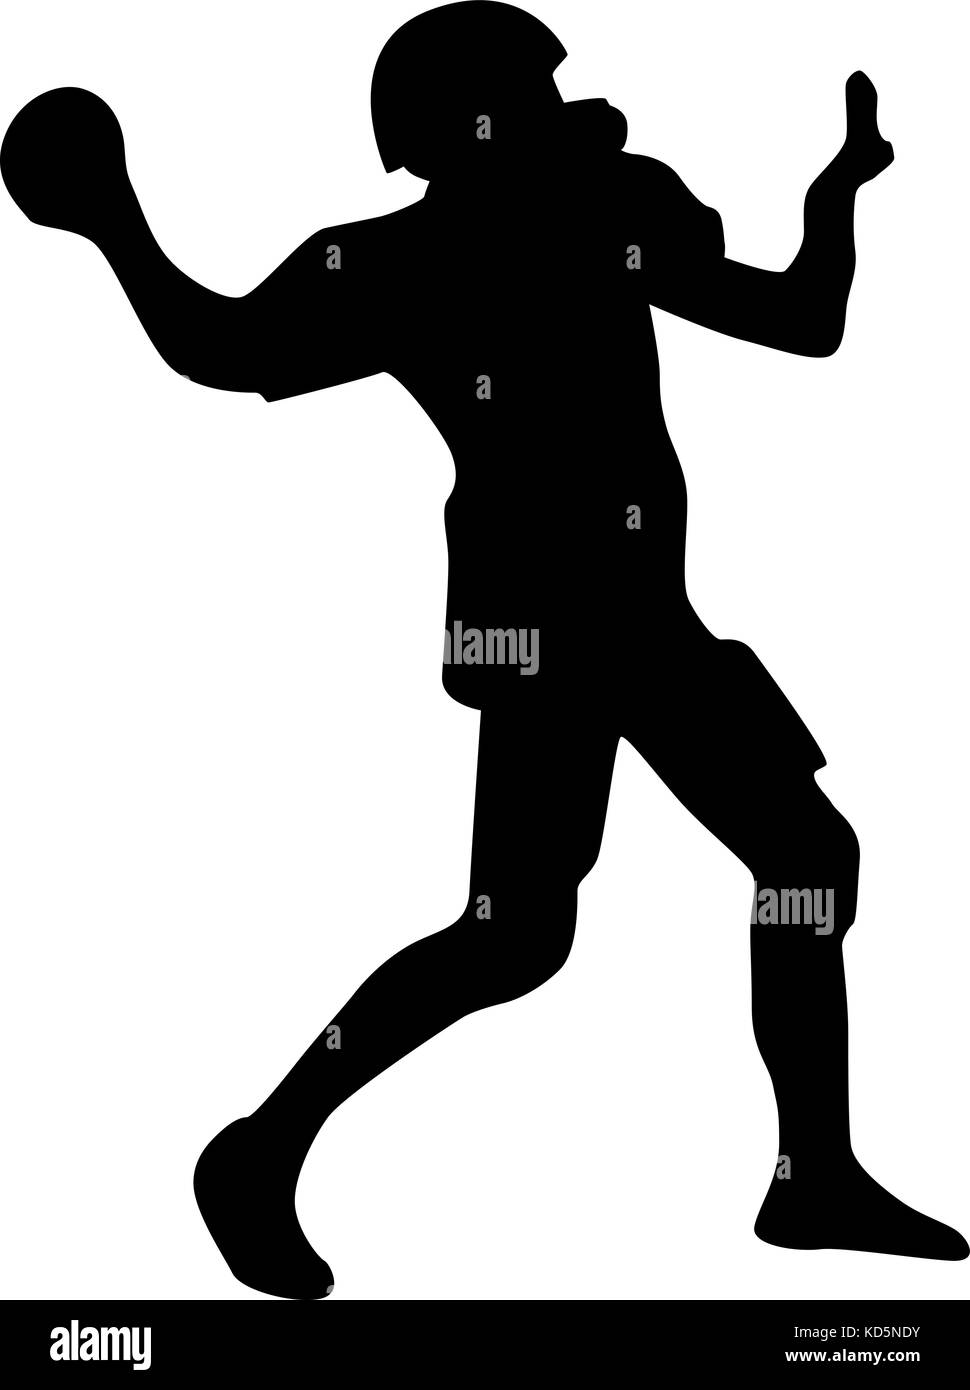 american football player silhouette vector - Stock Image